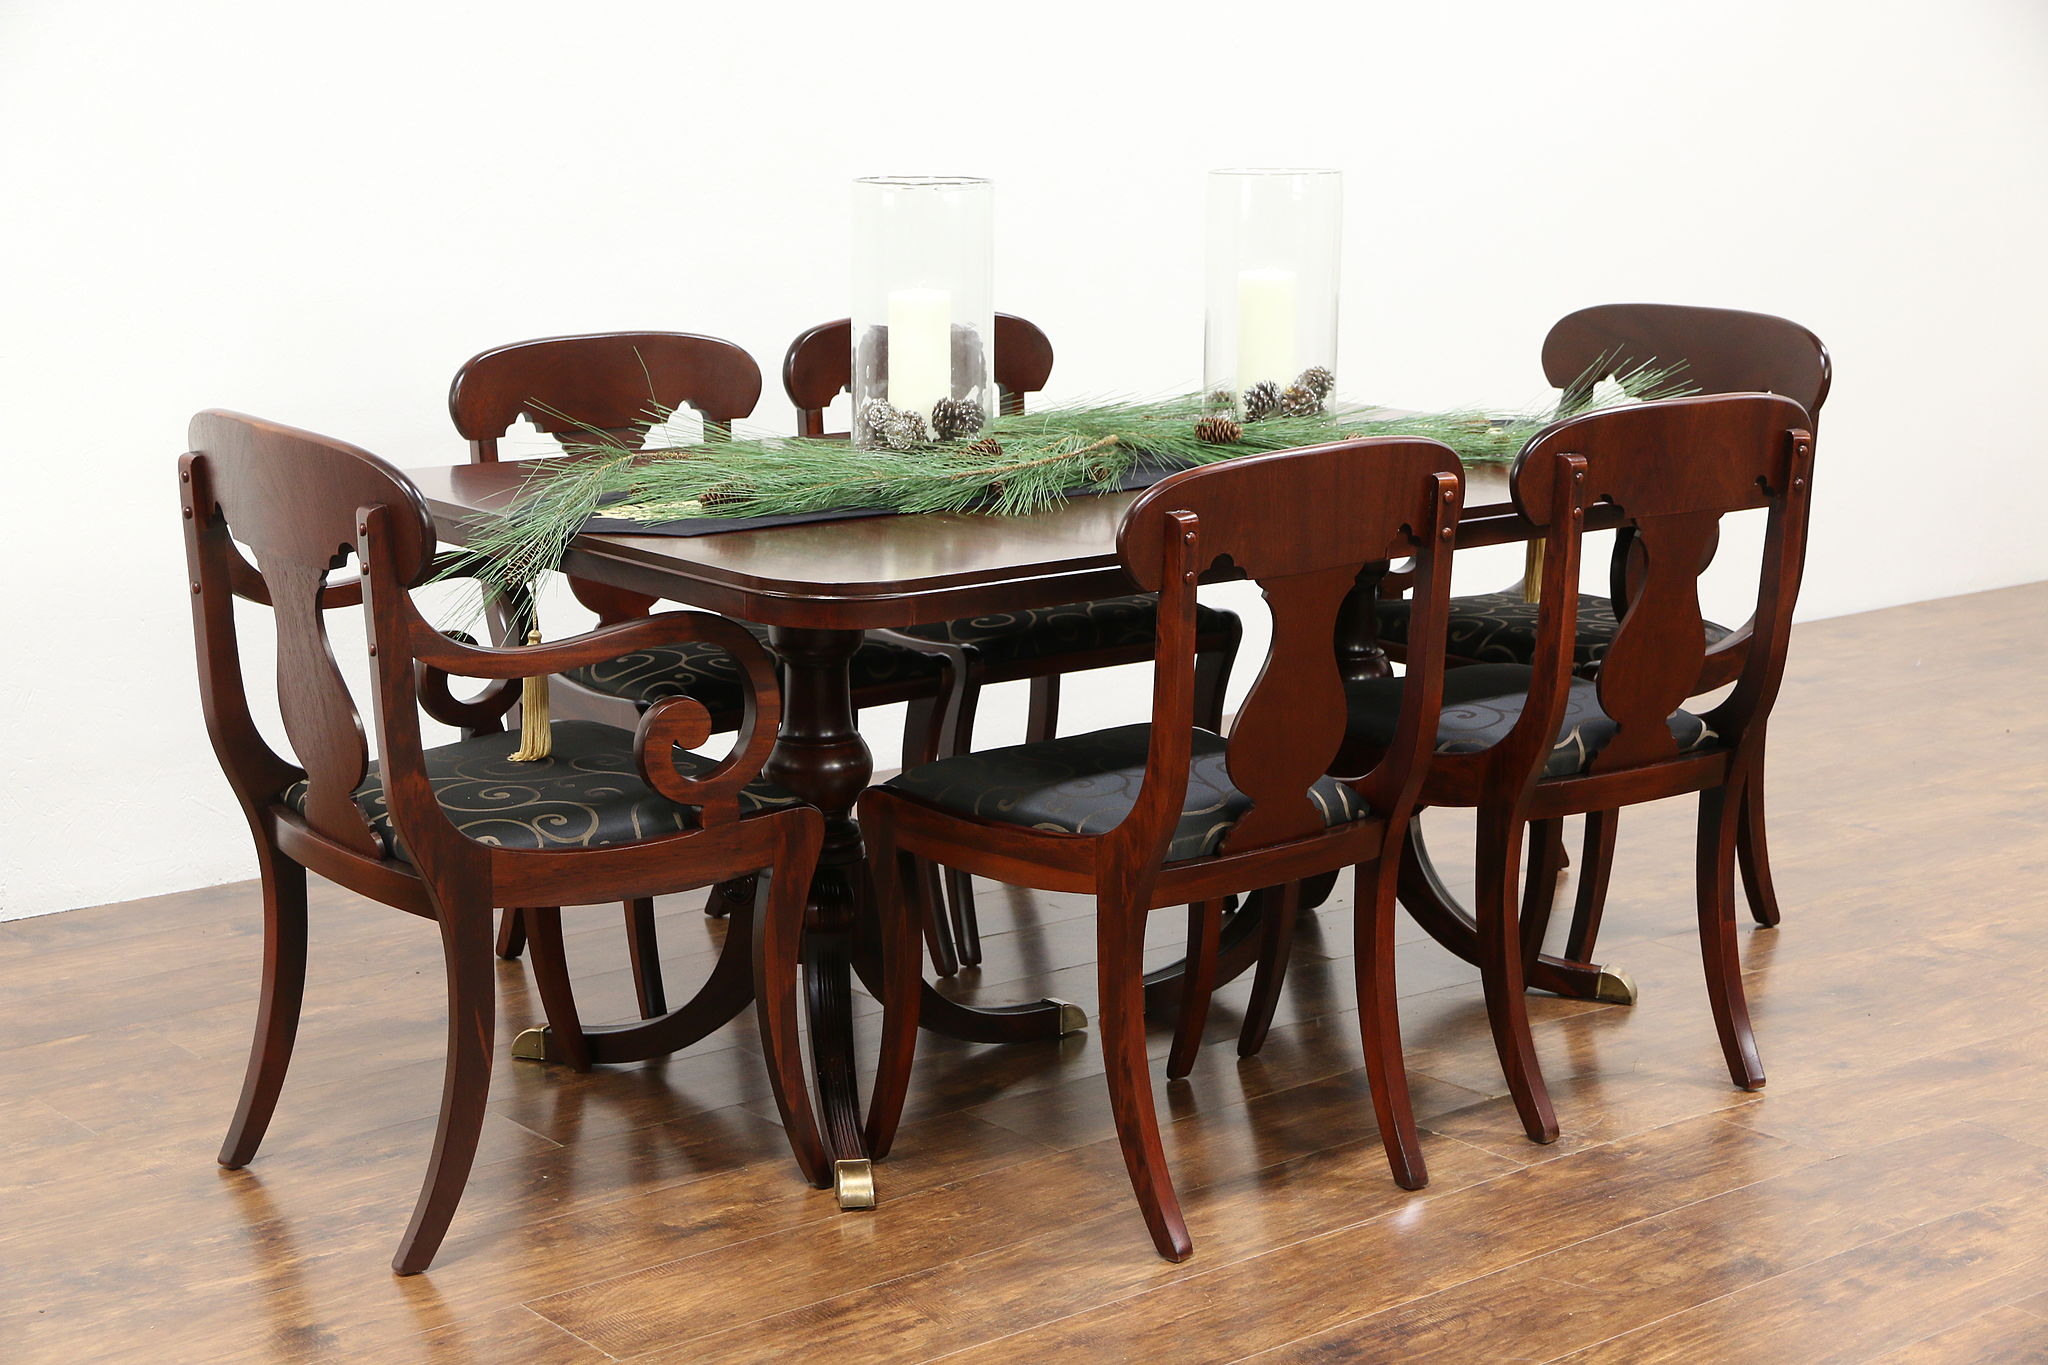 Mahogany Traditional Vintage Dining Set, Table U0026 3 Leaves, 6 Chairs, Drexel